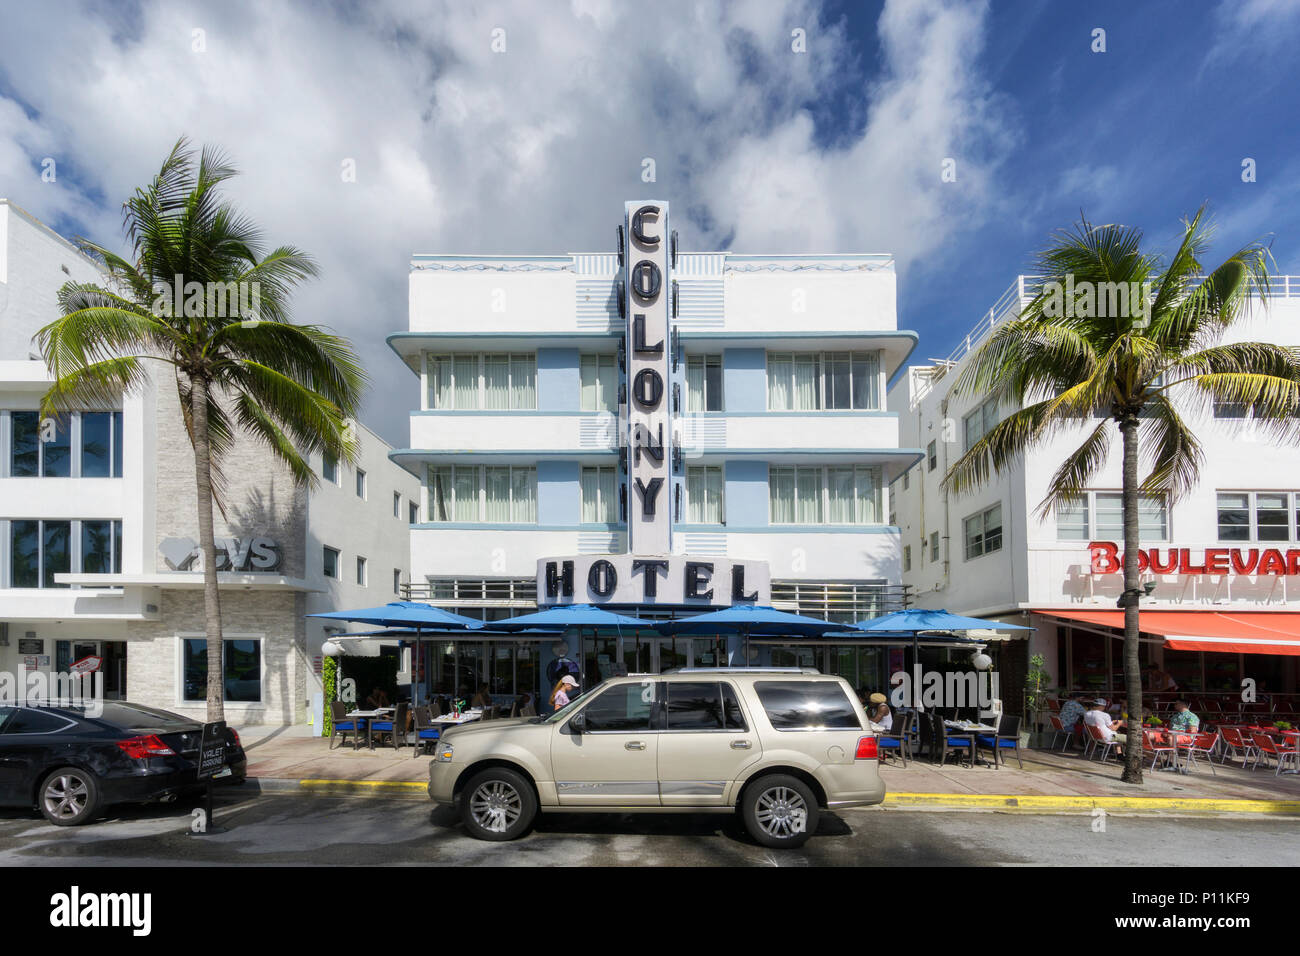 MIAMI BEACH, FLORIDA - JUNE 9, 2018: the famous art deco district of Ocean Drive in South Beach, the Colony Hotel. Miami, USA - Stock Image